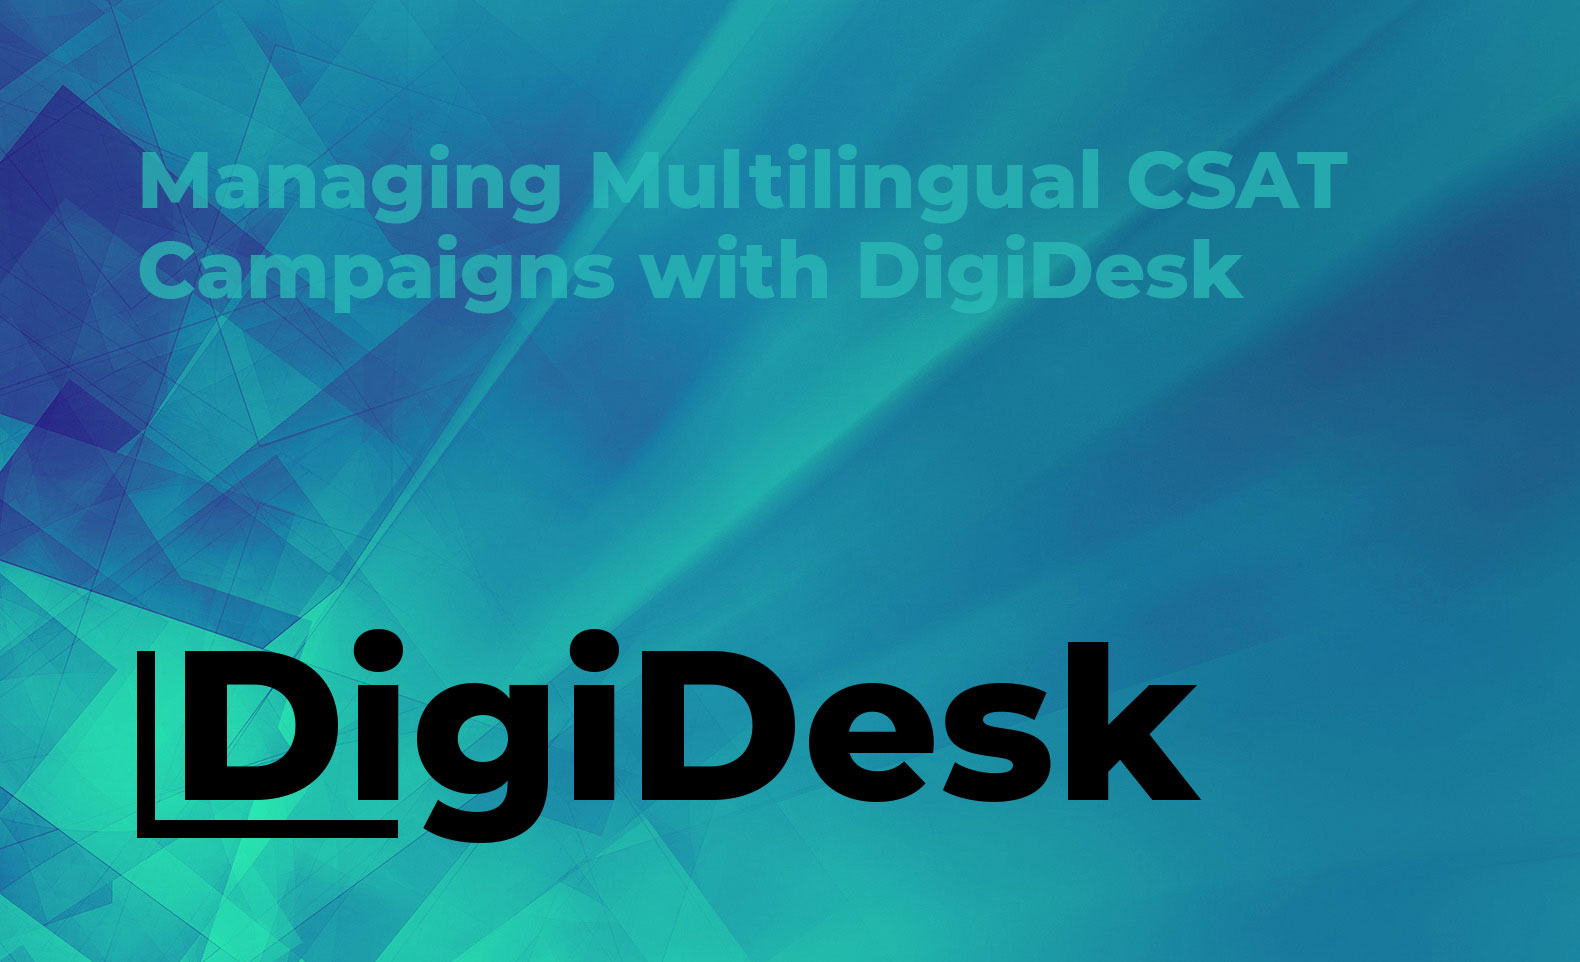 Managing Multilingual CSAT Campaigns with DigiDesk